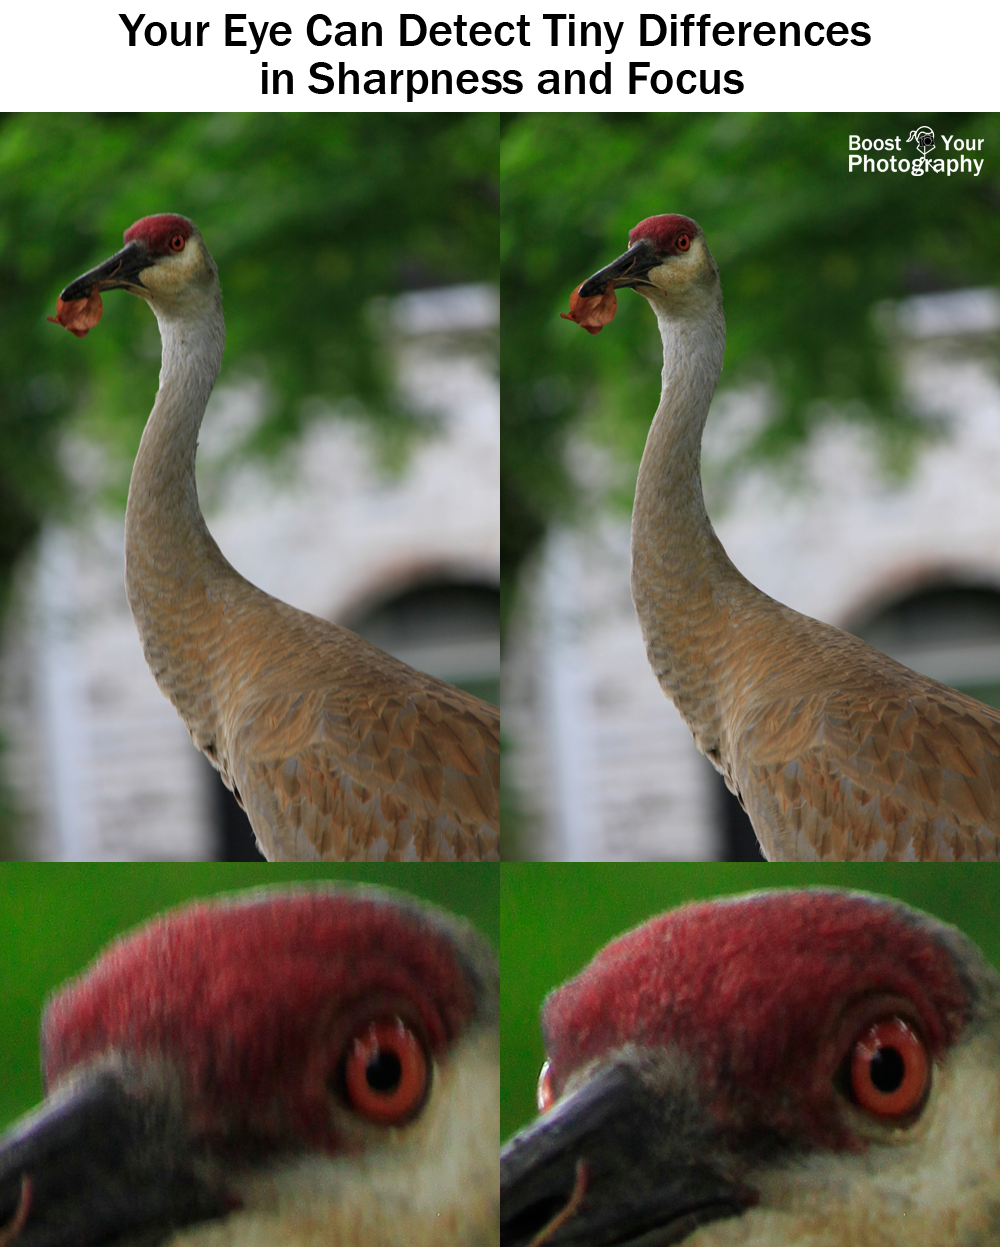 Your eye can detect tiny differences in sharpness and focus | Boost Your Photography